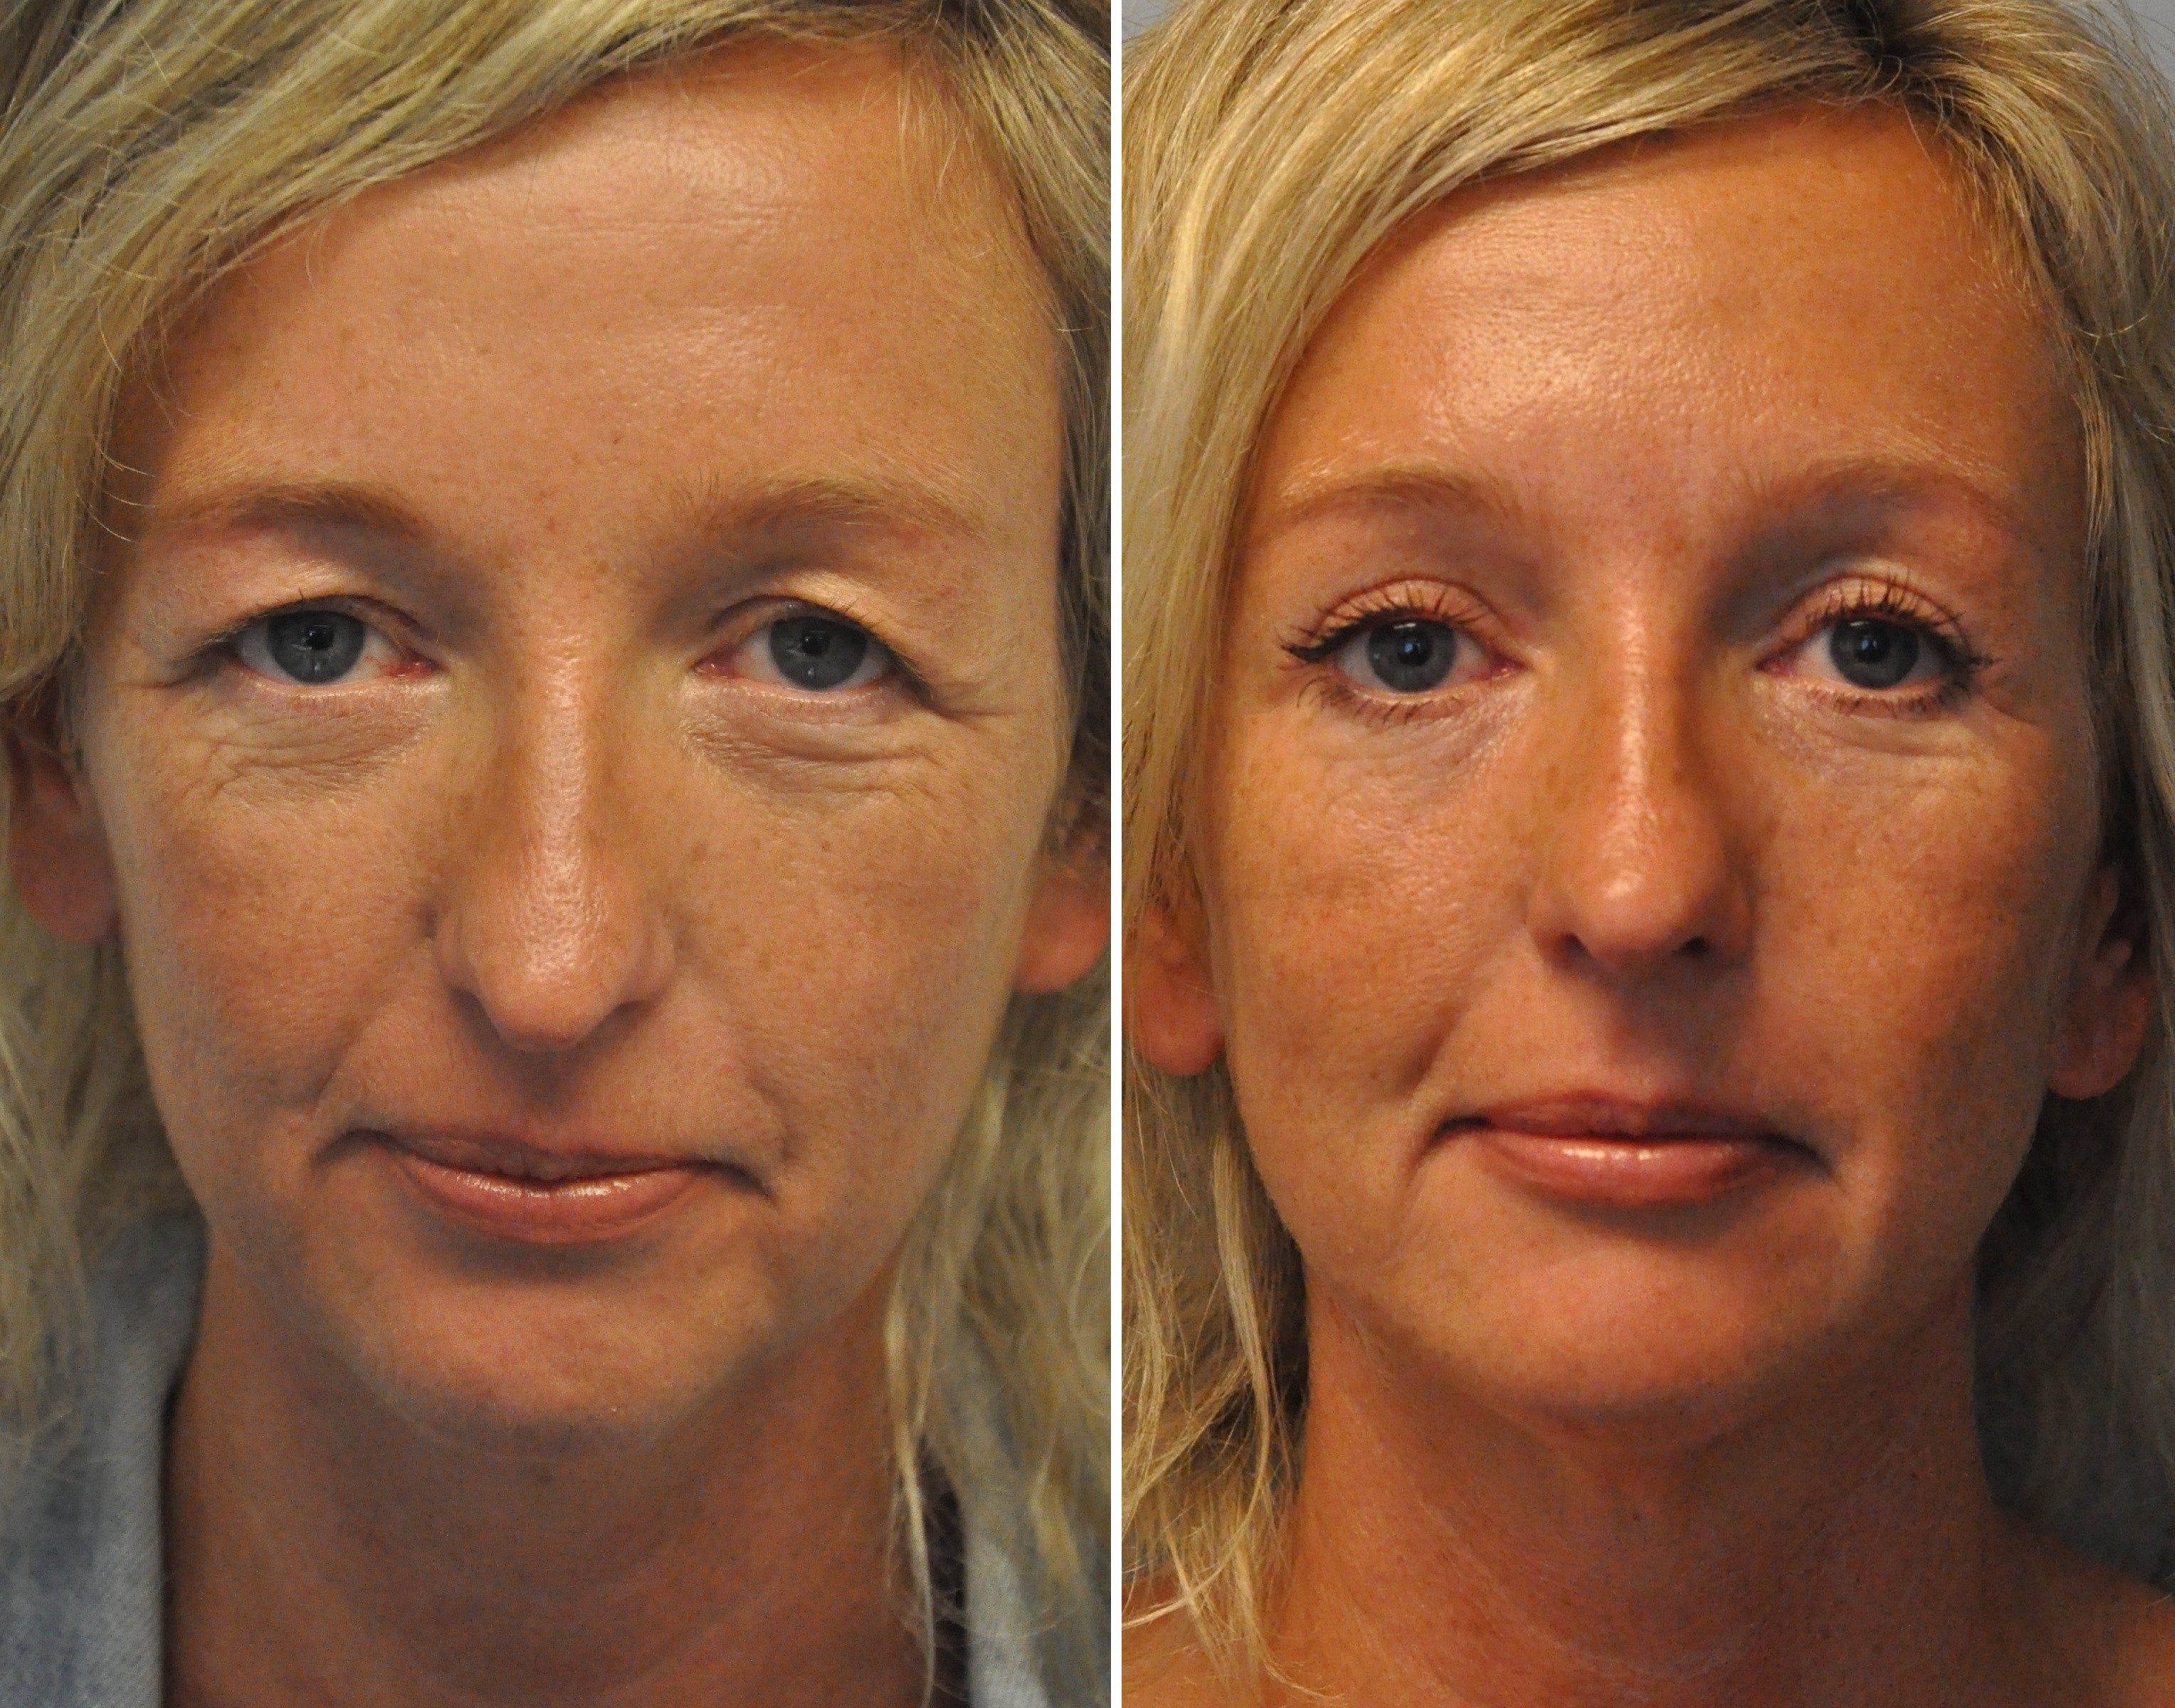 ooglidcorrectie 10 - Results Upper eyelid correction